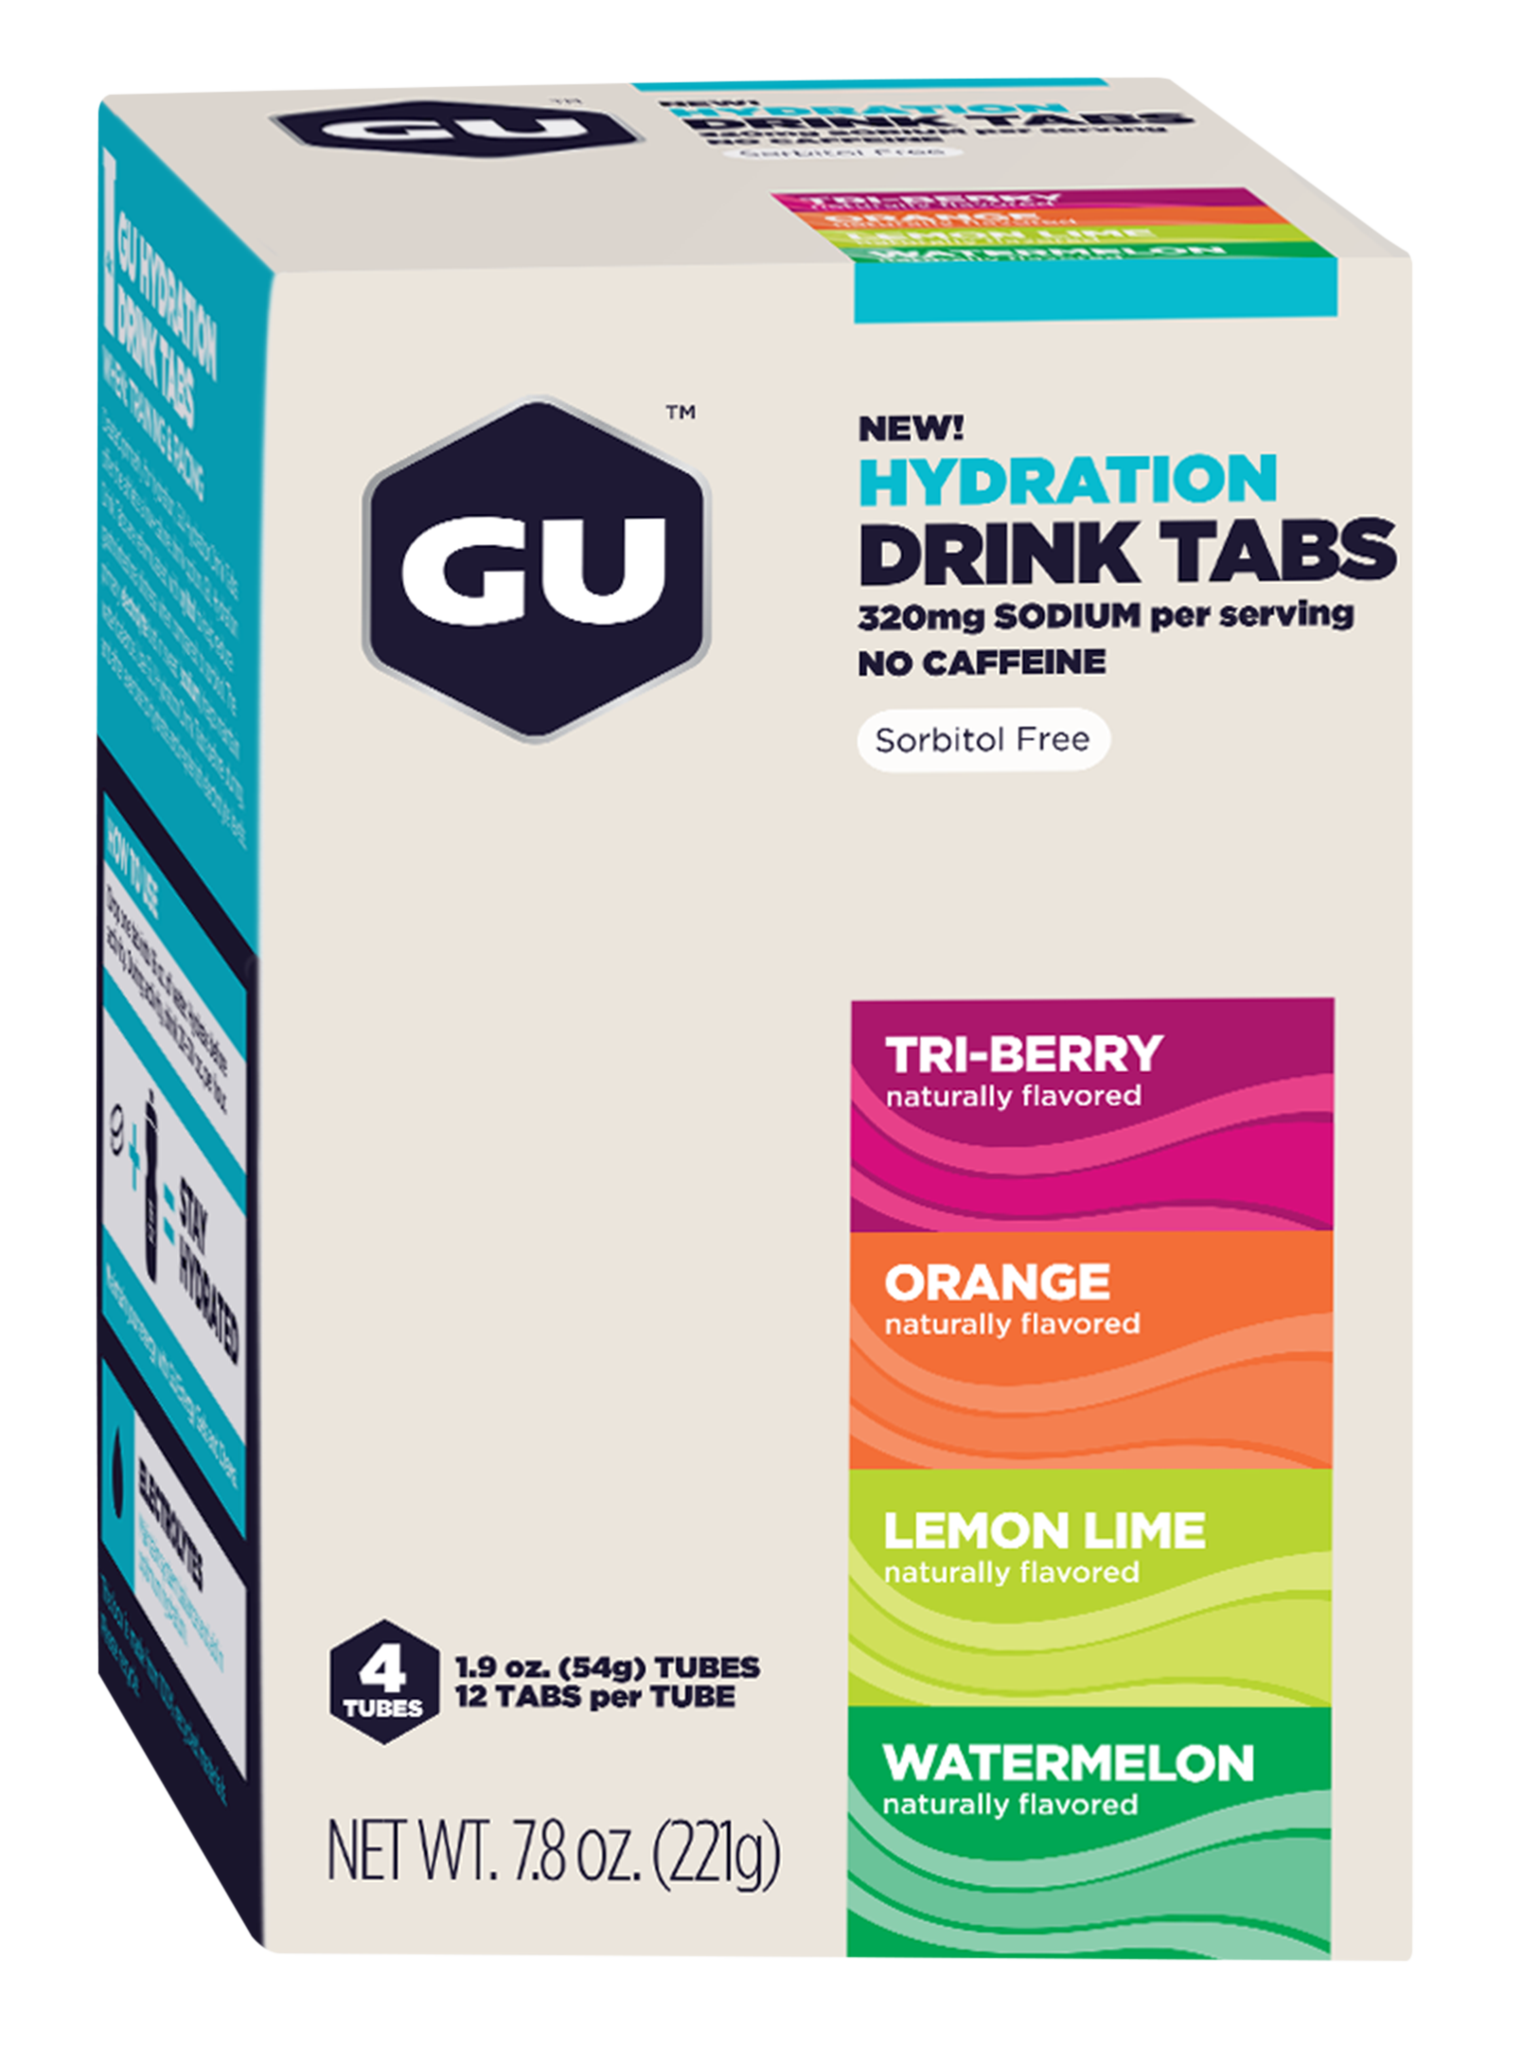 GU Hydration drink tabs - Triathlon Point